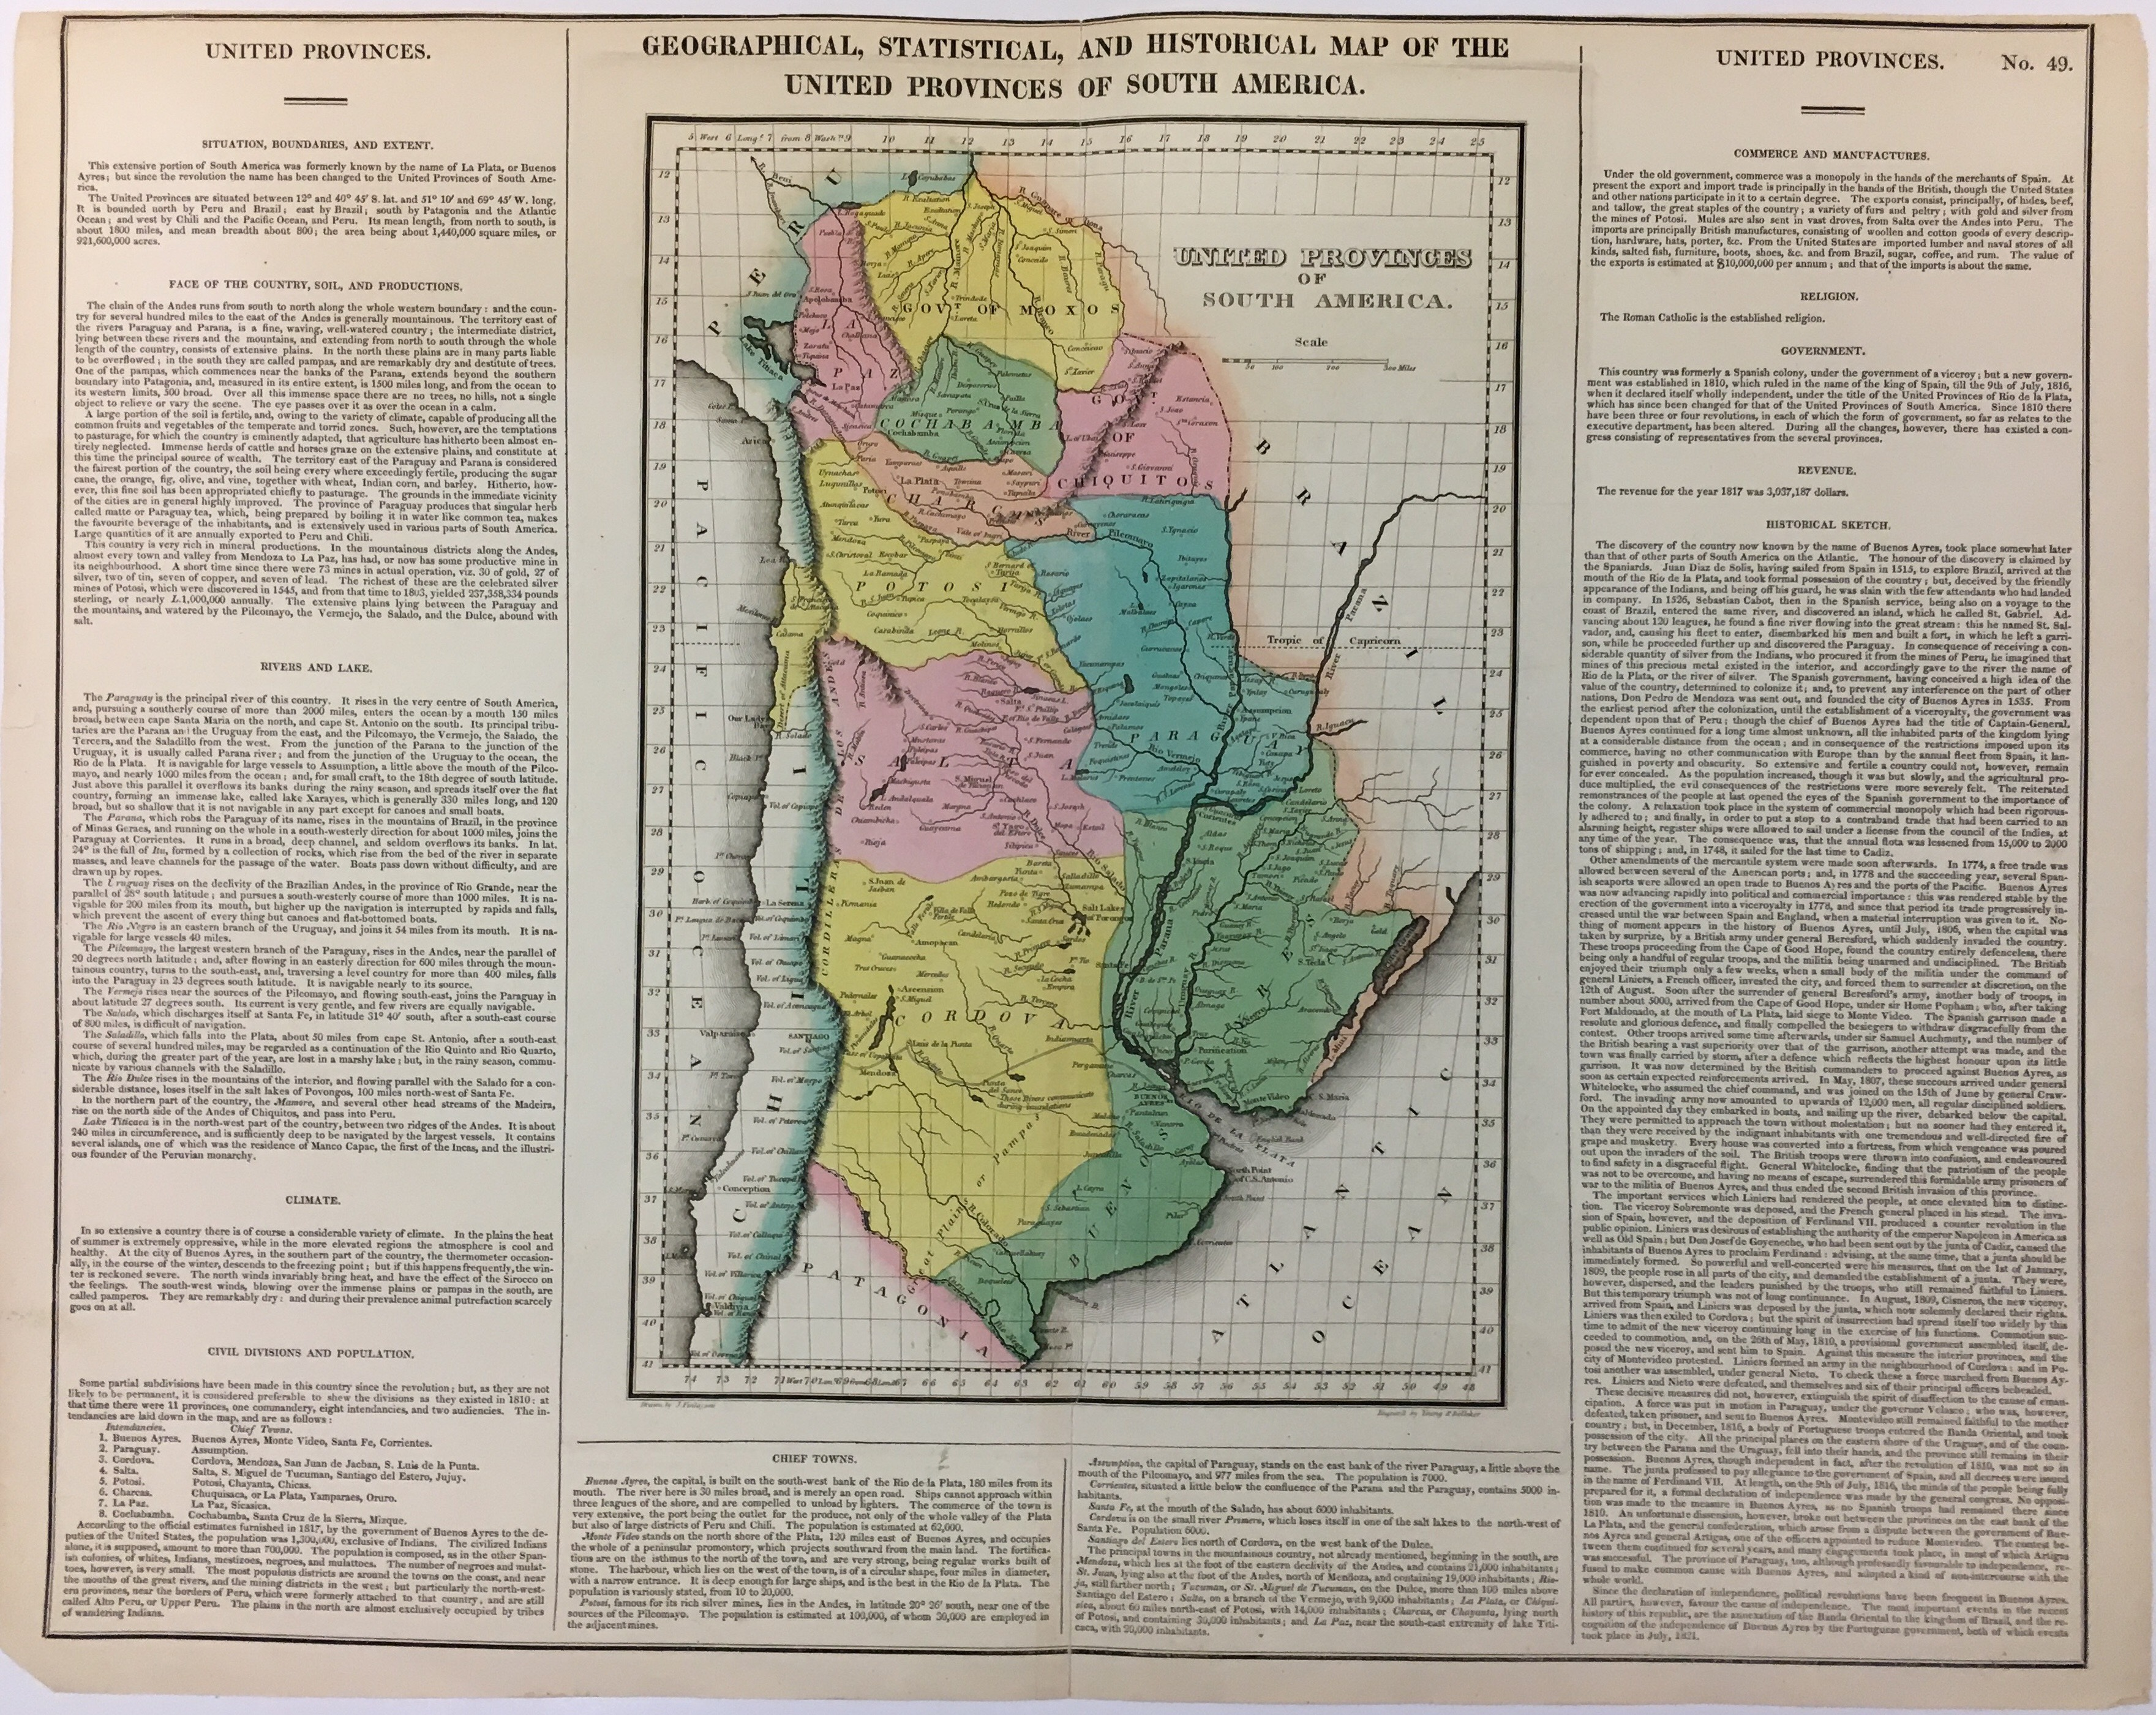 Geographical, Historical, and Statistical Map of the United Provinces of South America. CAREY, LEA.